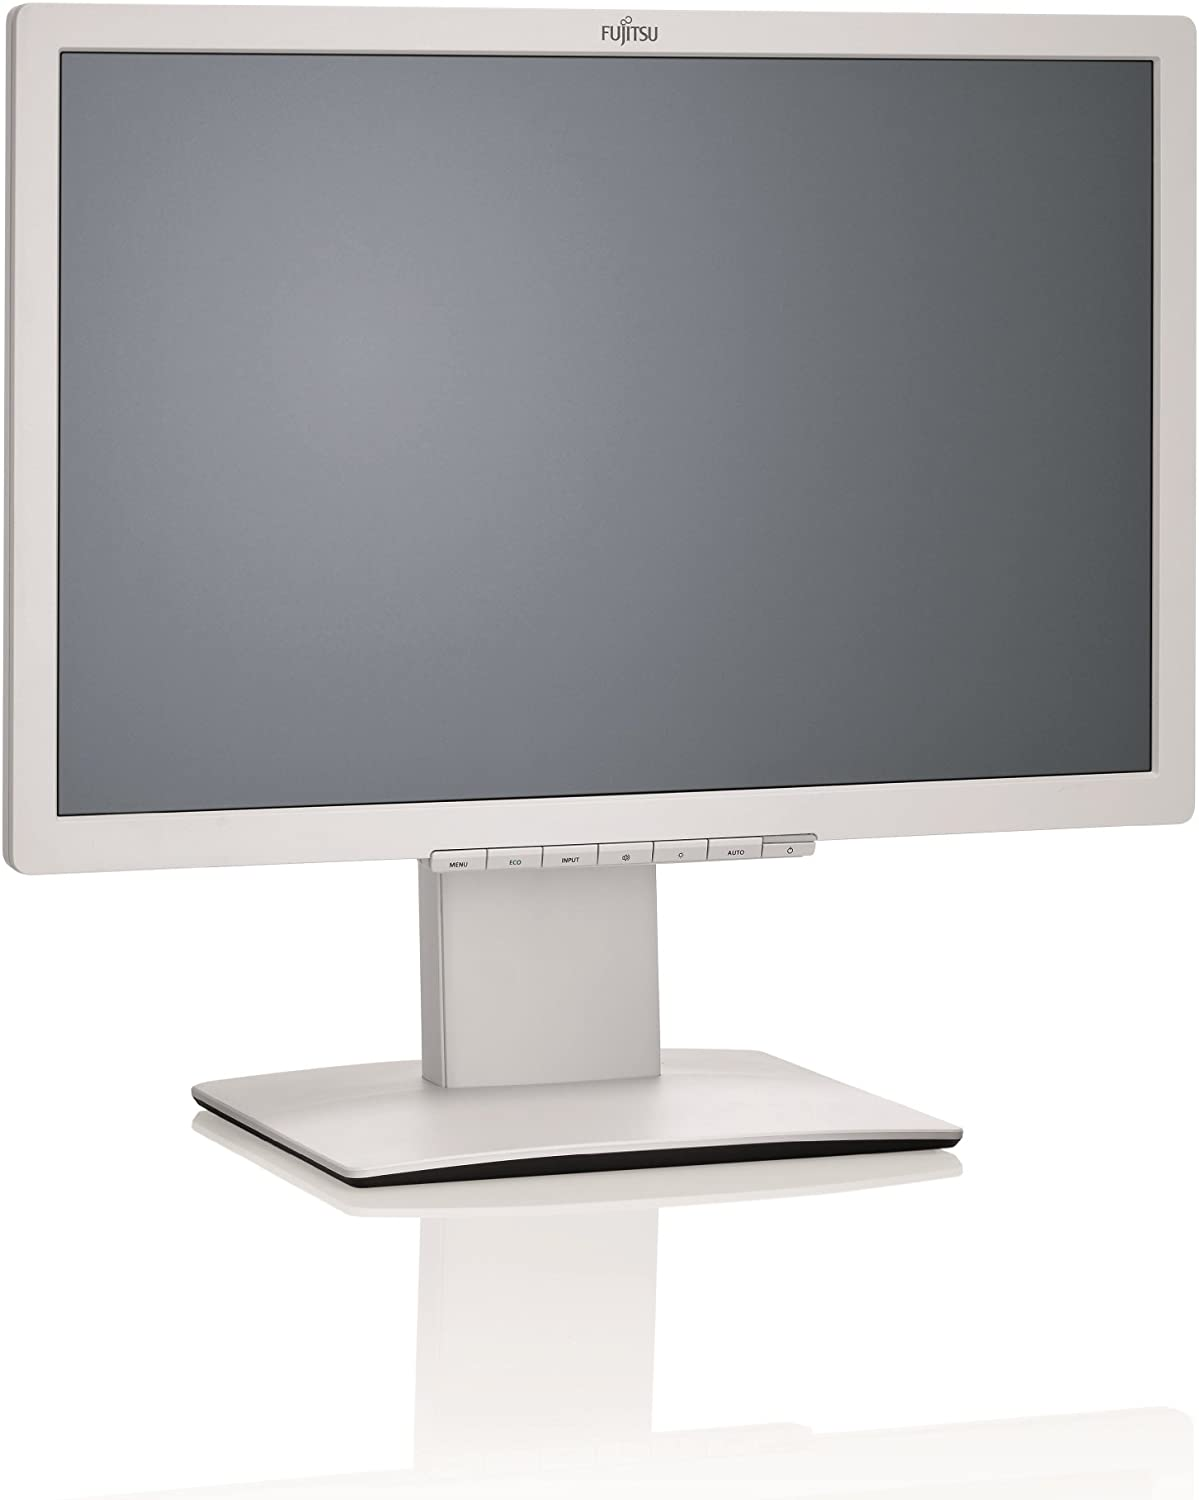 "Fujitsu B line B10W-10 10"" White HD ready Matt - PC flat panels (10 x 10  pixels, LED, HD ready, TN, Matt, 10 x 10, 10 x 1068 (XGA), 10 x 10"